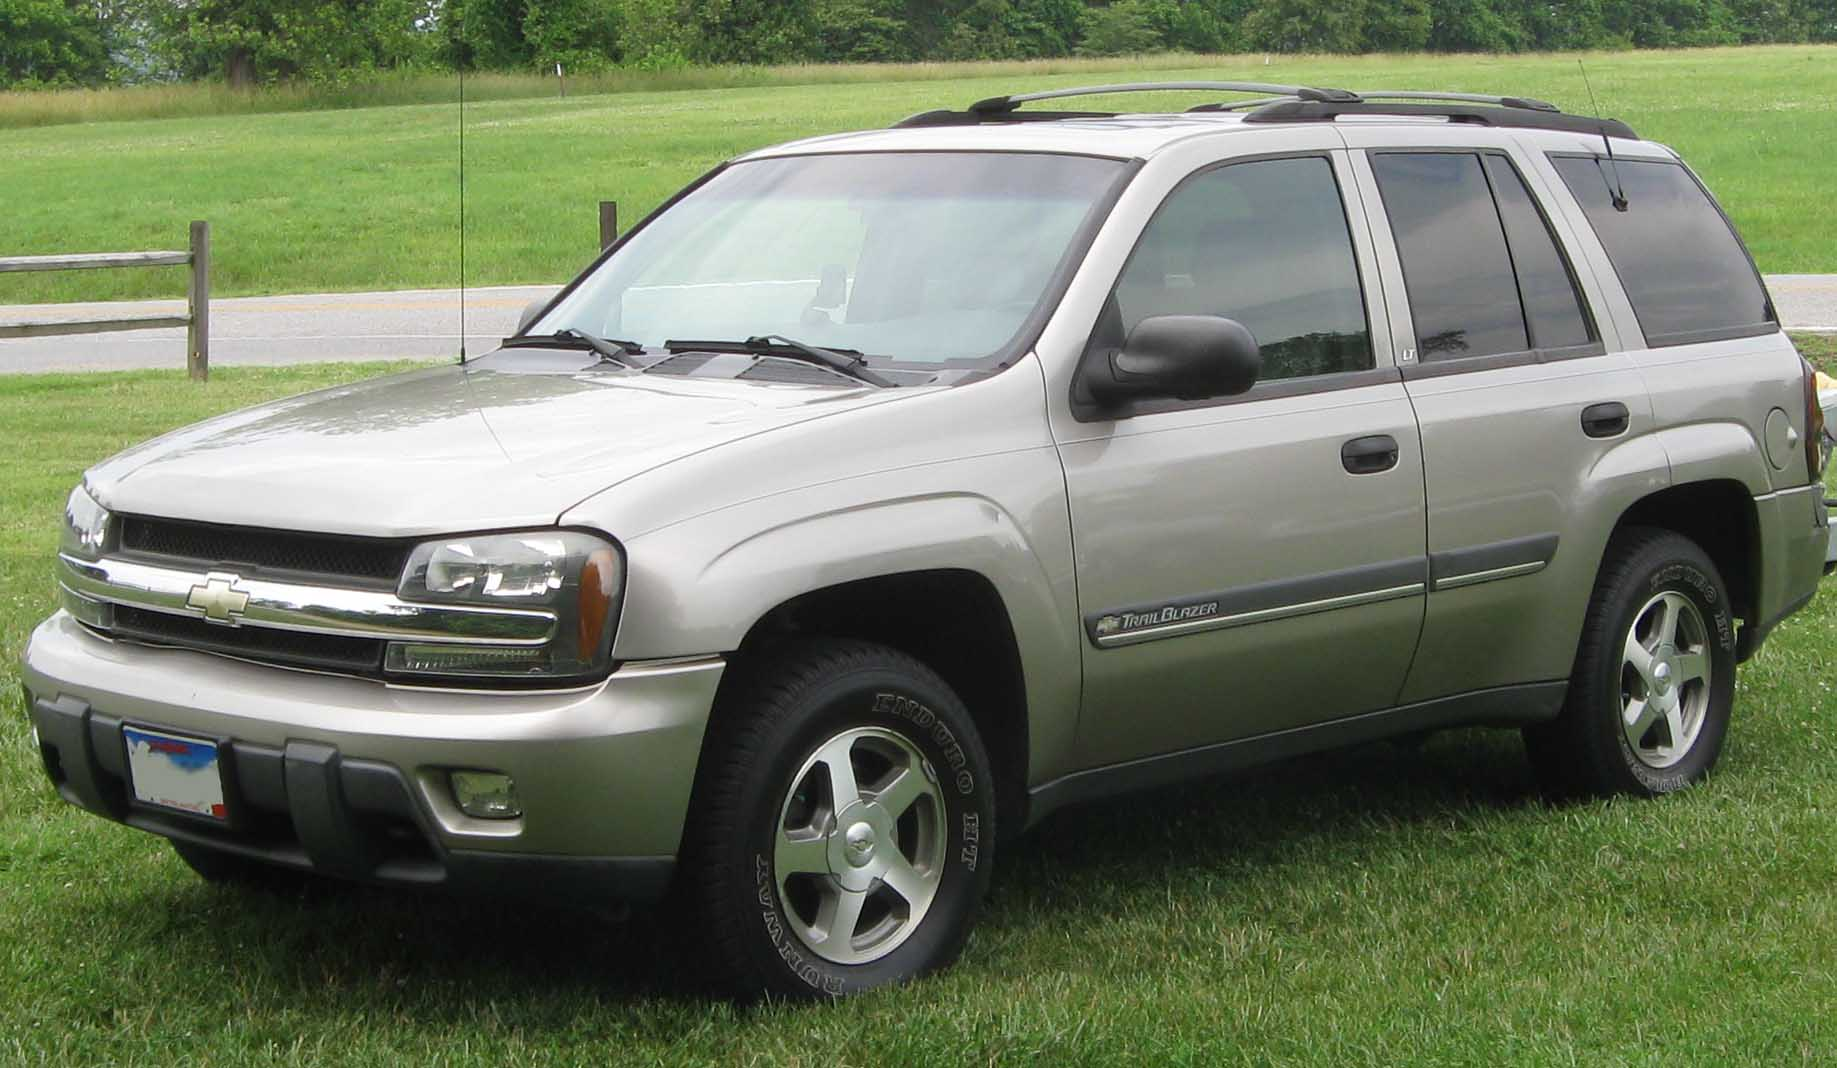 Chevrolet Trailblazer Wikipedia 2007 C6 Corvette Wiring Diagrams